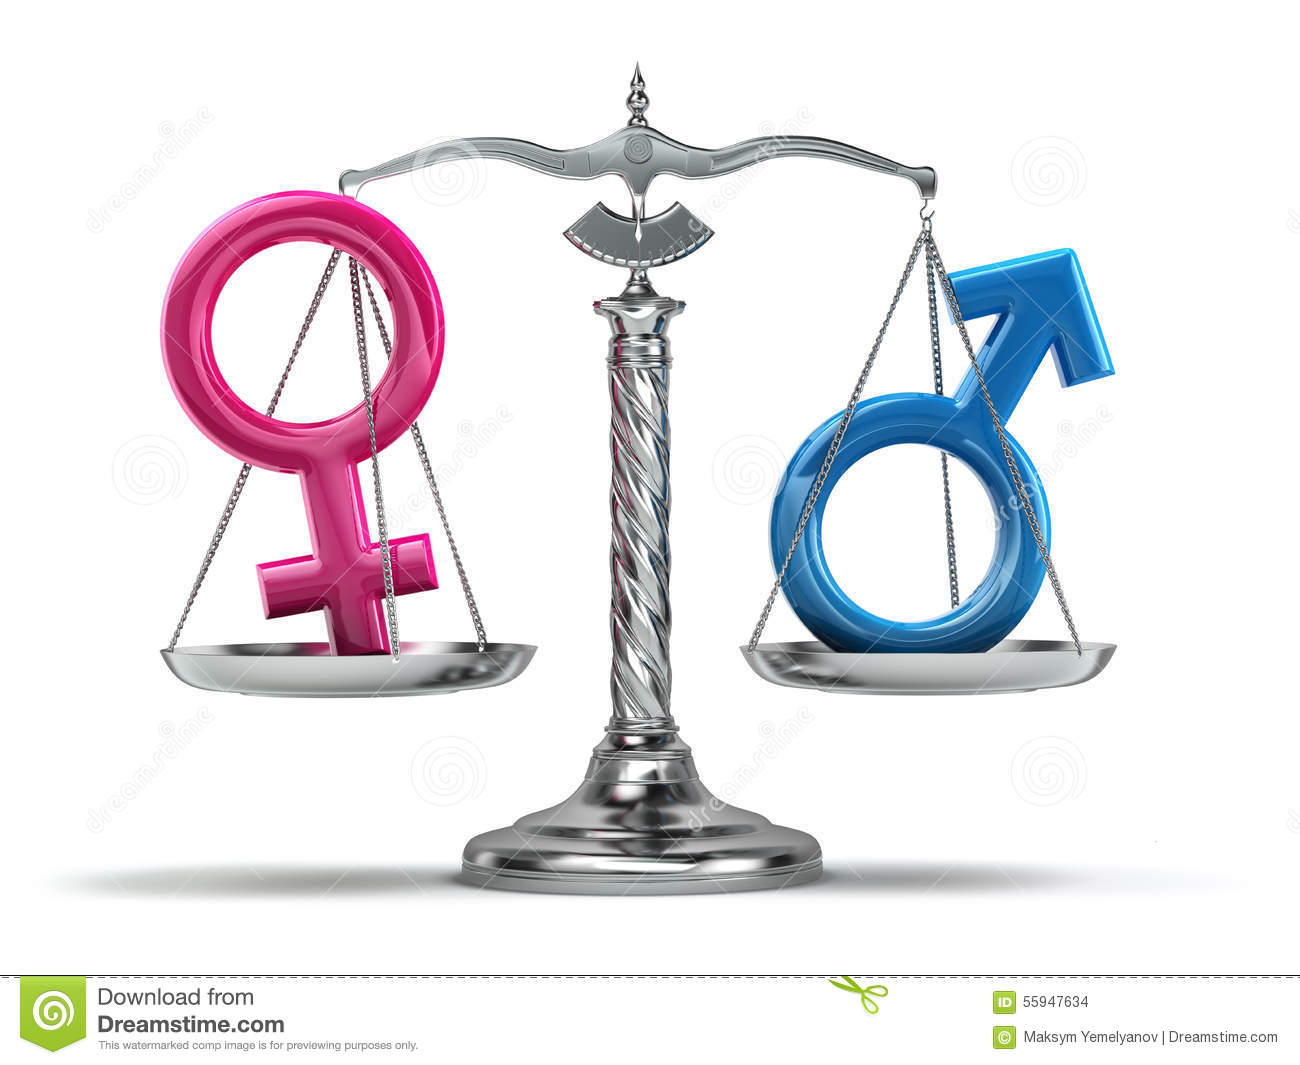 the concept of gender Aim of this section: some of the basic concepts of gender equality are  presented here you should aim to understand these concepts and use the  exercises.